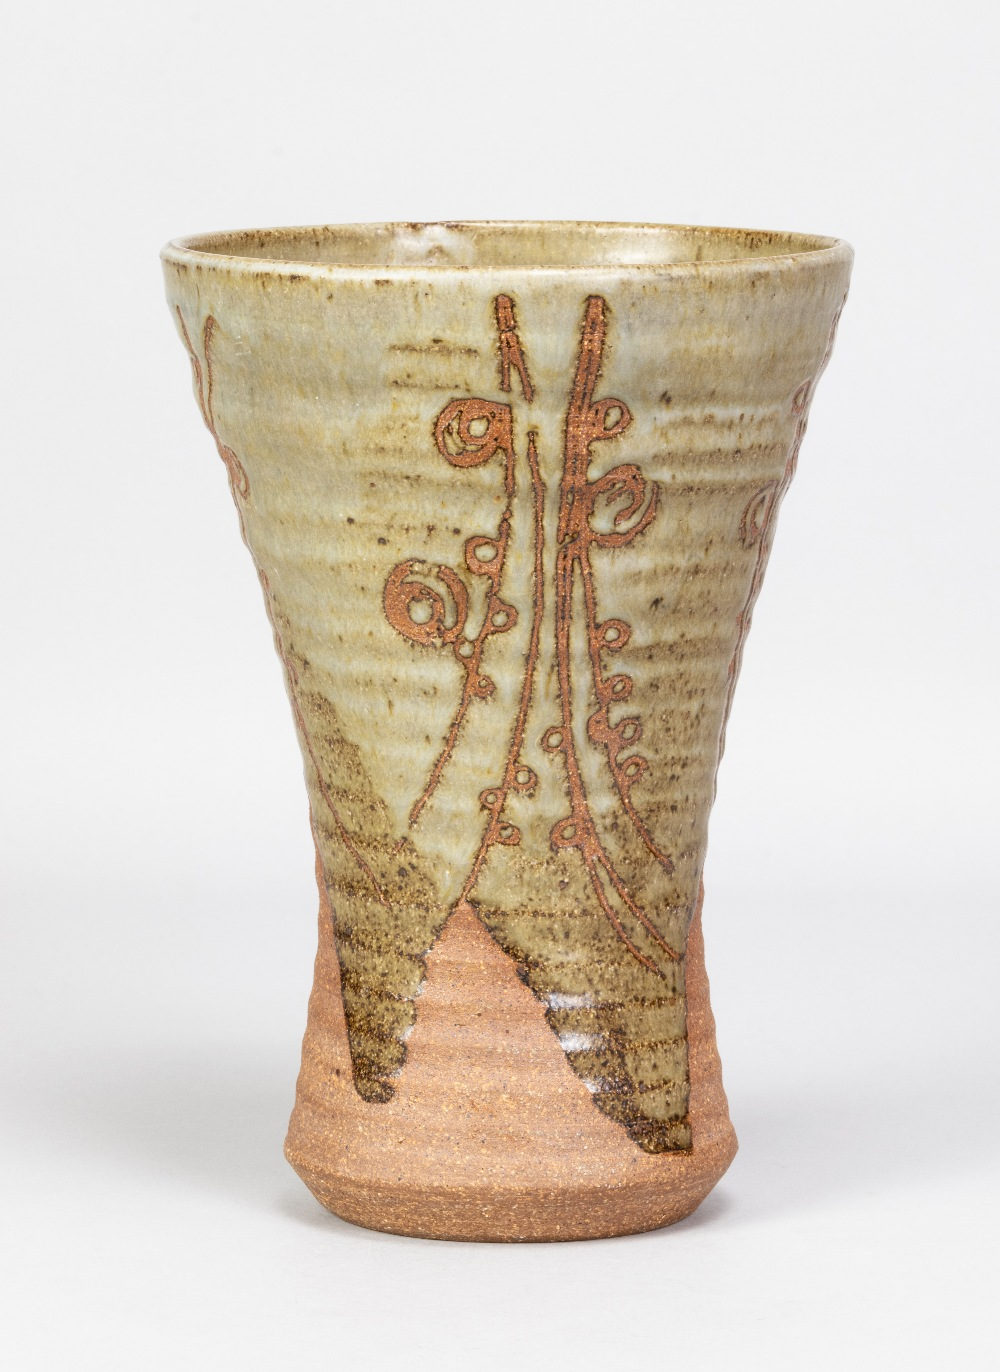 MICHAEL CASSON (1925-2003); a waisted stoneware vase partially covered in green glaze with wax